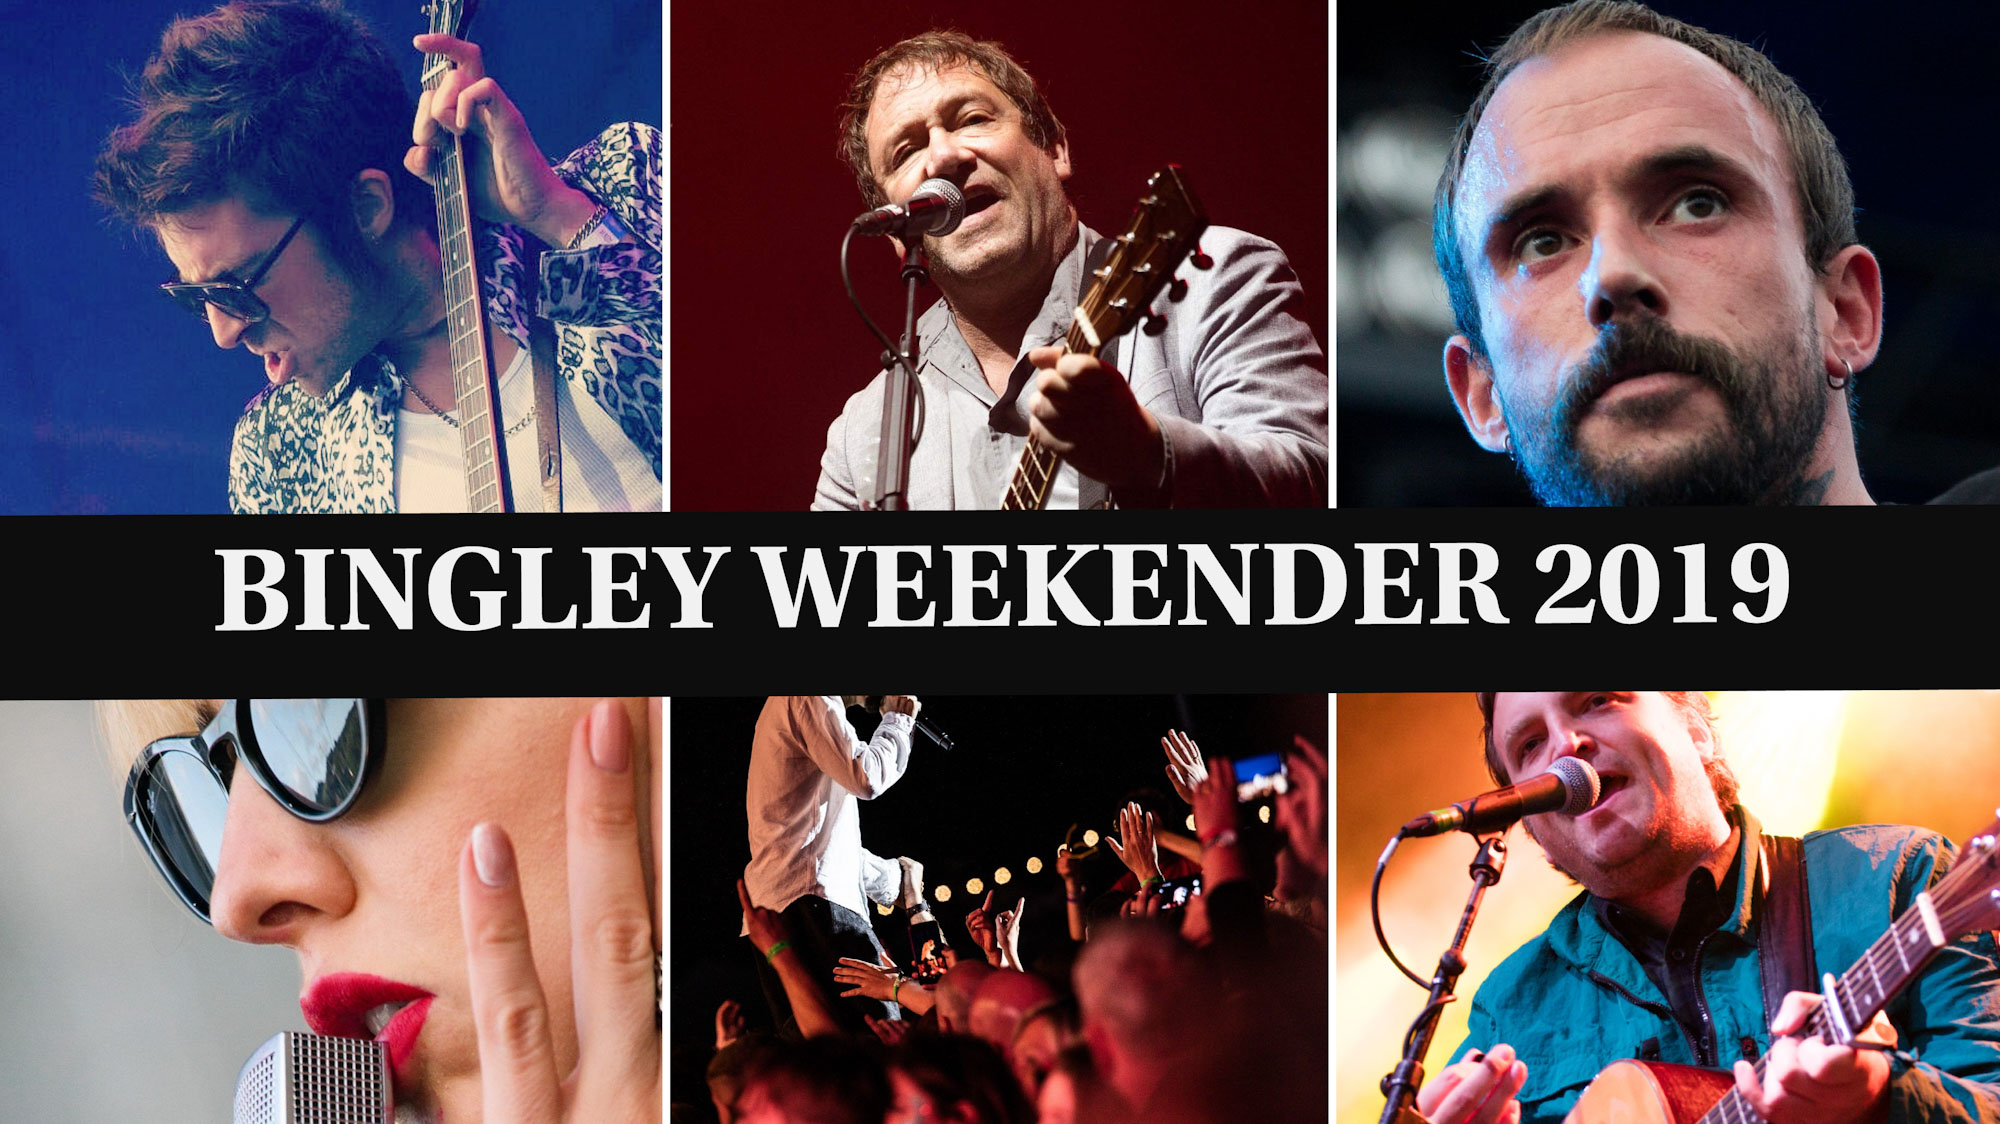 Bingley Weekender 2019 Review